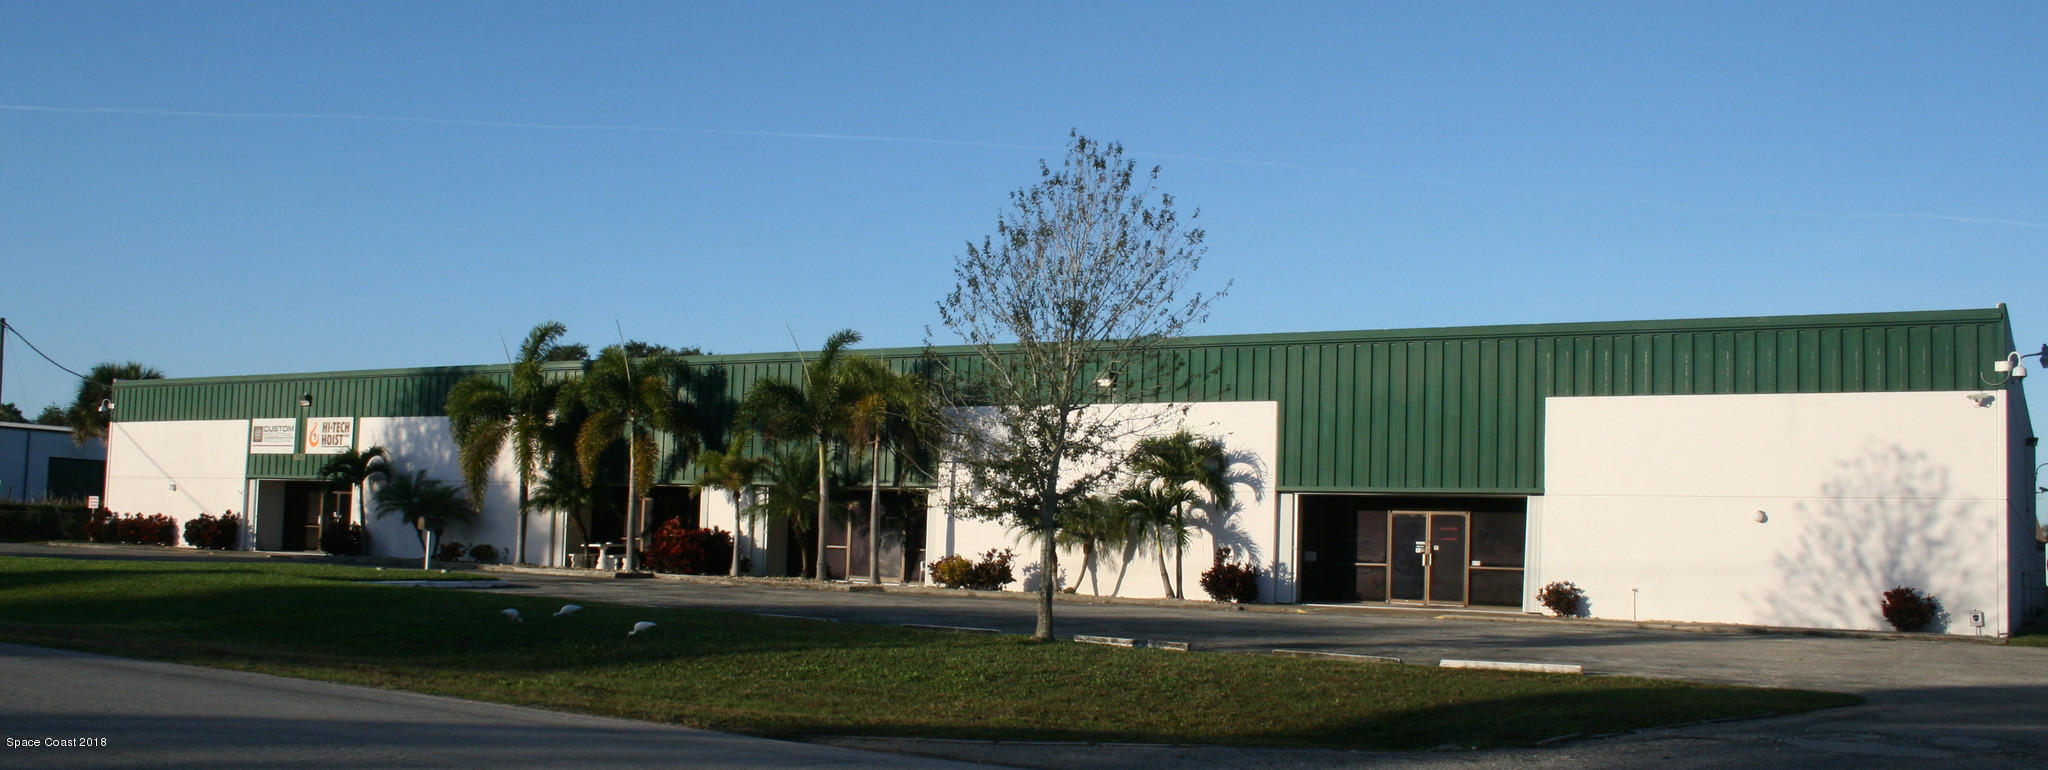 Commercial for Rent at 360 East 360 East Melbourne, Florida 32904 United States